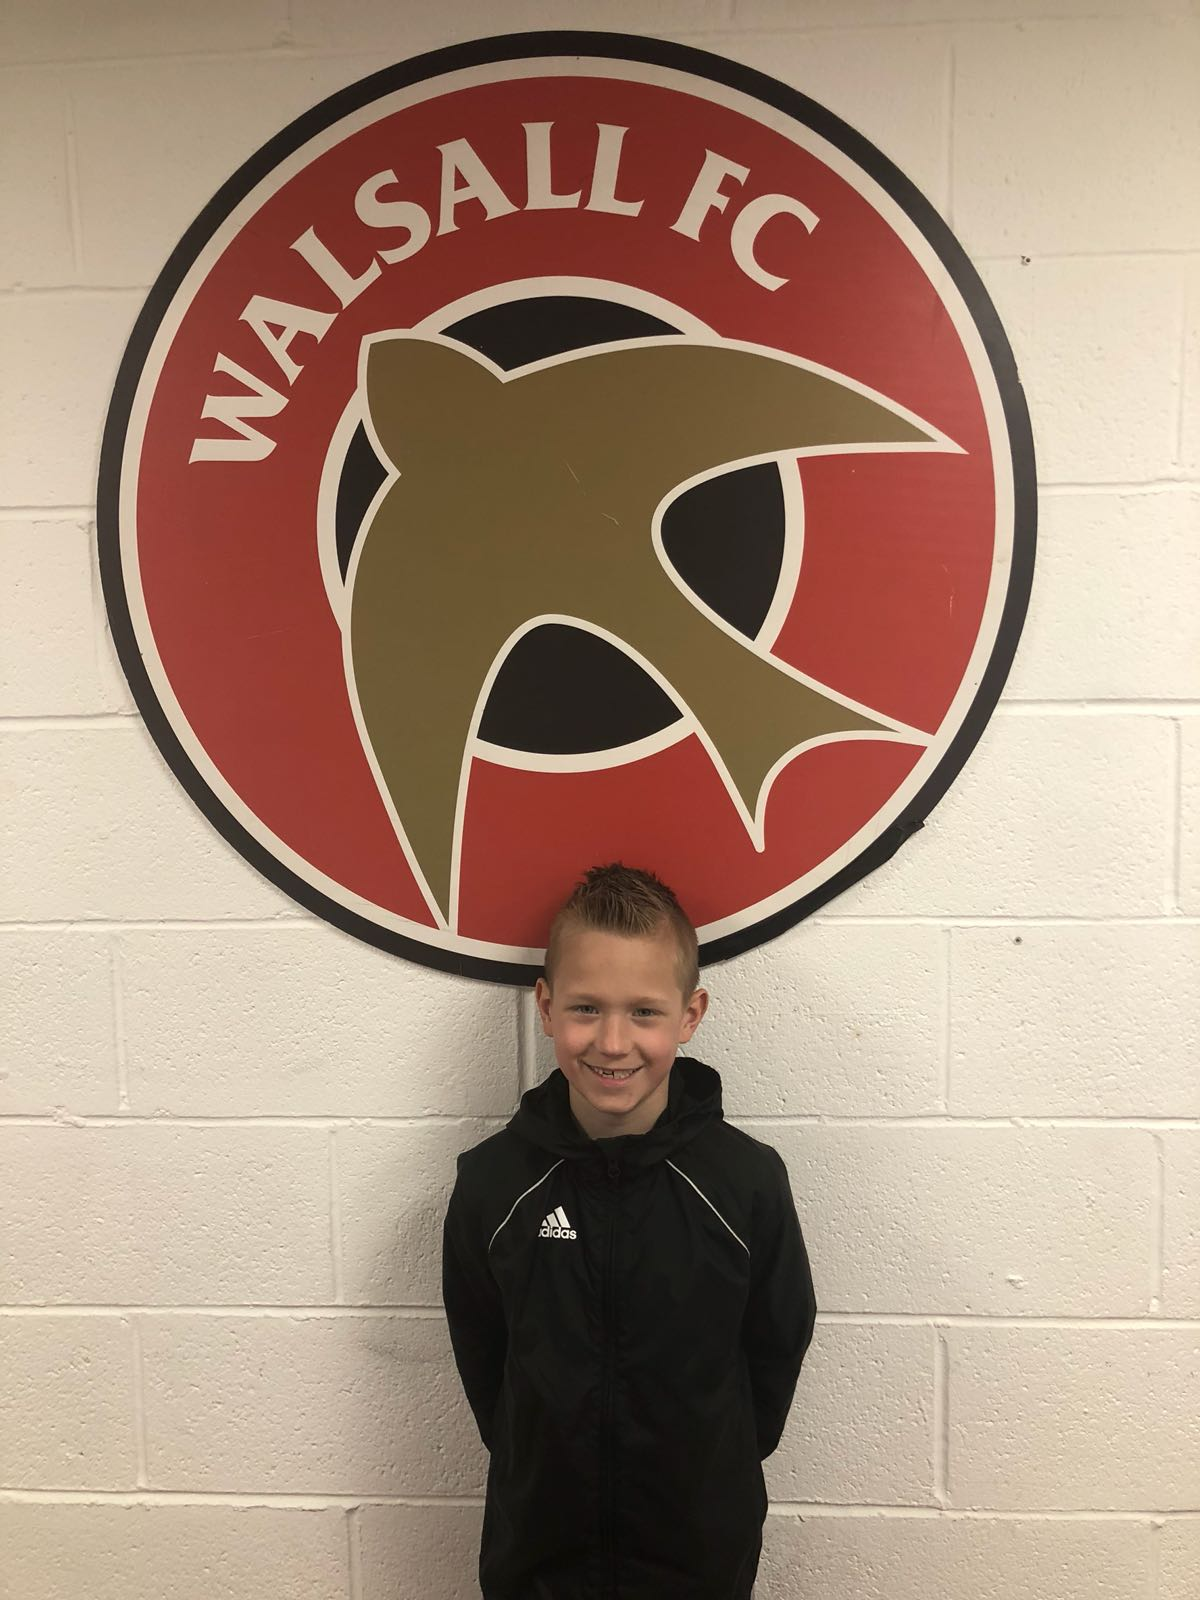 HARRY ROGERS - AGE: 8CLUB: WALSALL FCPOSITION: MIDFIELD / FORWARDSTARTED IPDA: 8TH SEPTEMBER 2016SIGNED FOR ACADEMY: 23RD APRIL 2018